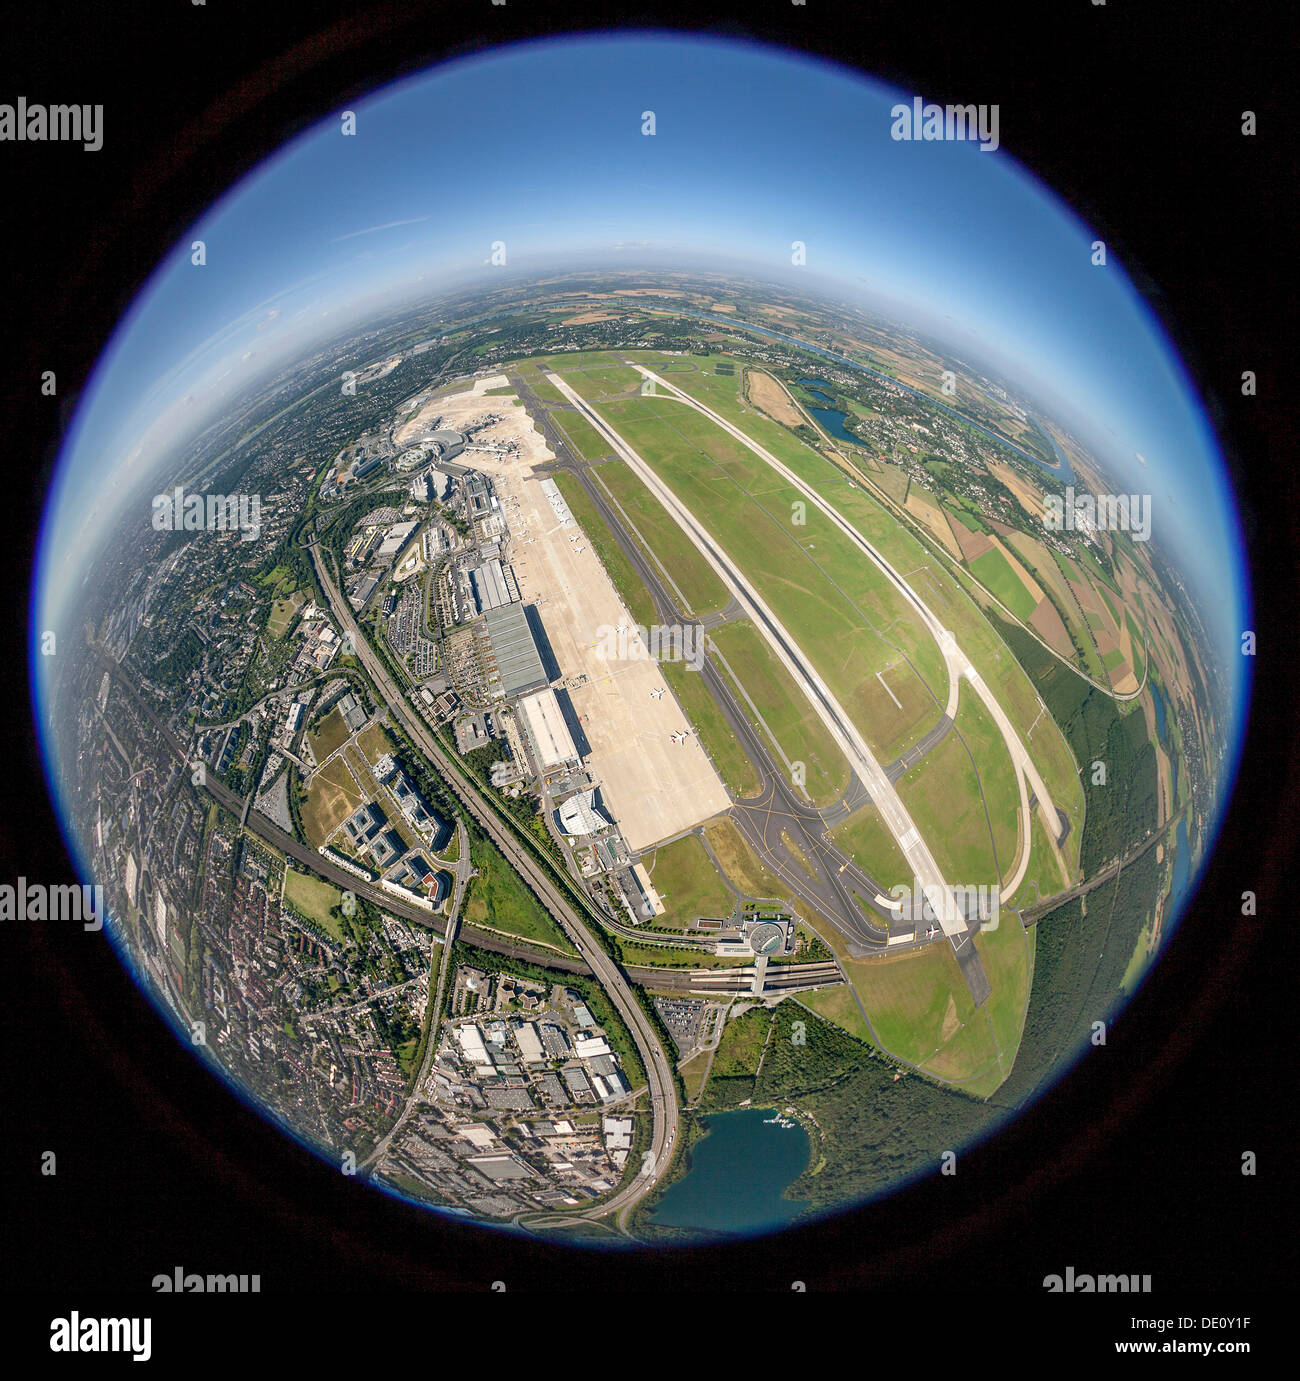 Aerial view, fisheye shot, Duesseldorf Airport, runways 23L and 23R, Duesseldorf, North Rhine-Westphalia - Stock Image